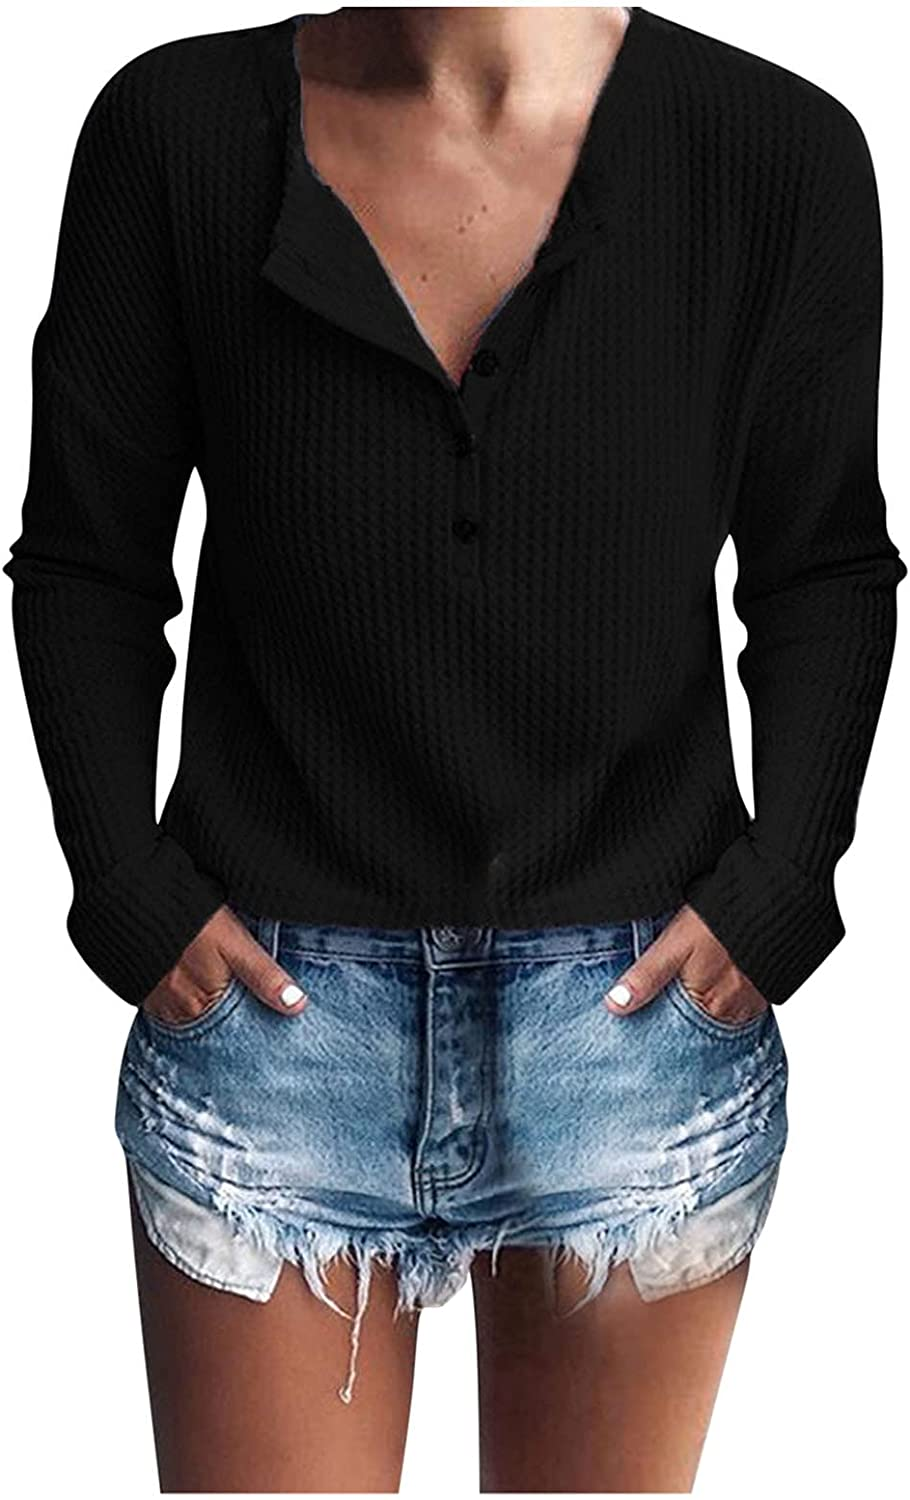 ManxiVoo Women's Fall T-Shirt Button V Neck Long Sleeve Pullover Loose Tops Sweater Casual Blouse T Shirt